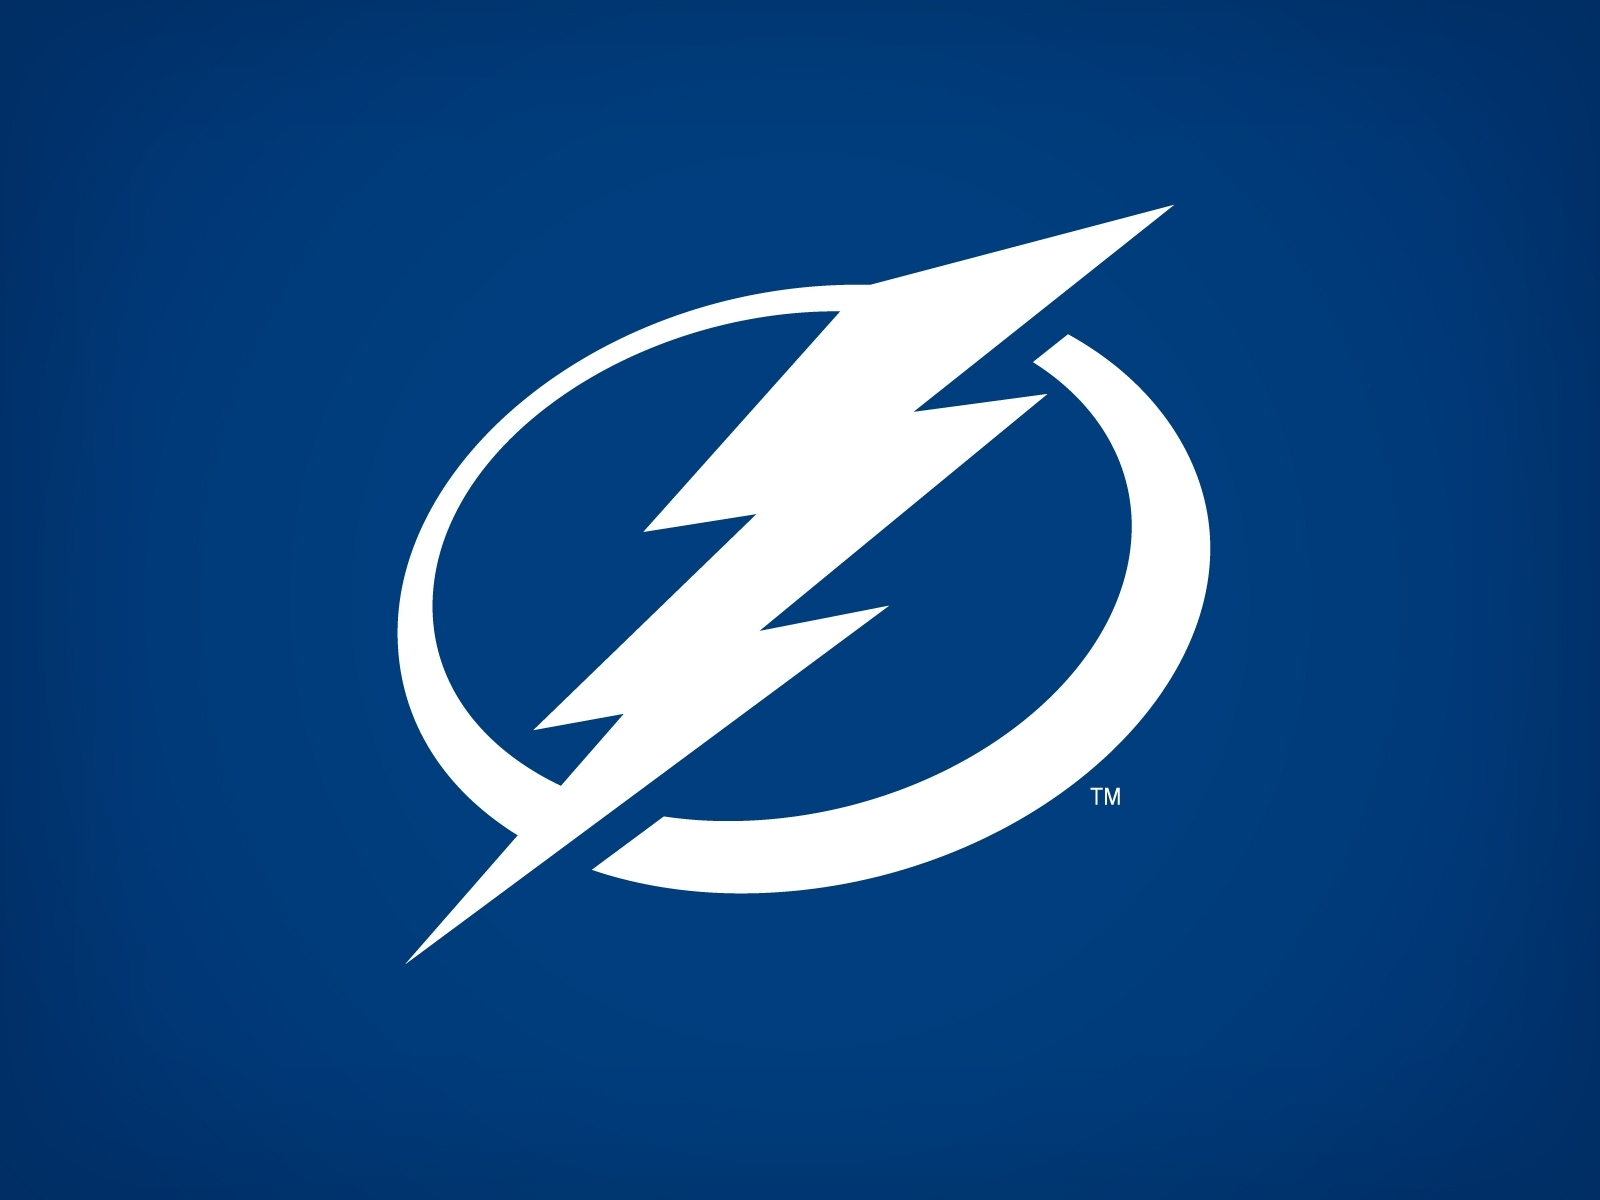 tampa bay lightning images tbl logo wallpaper hd wallpaper and